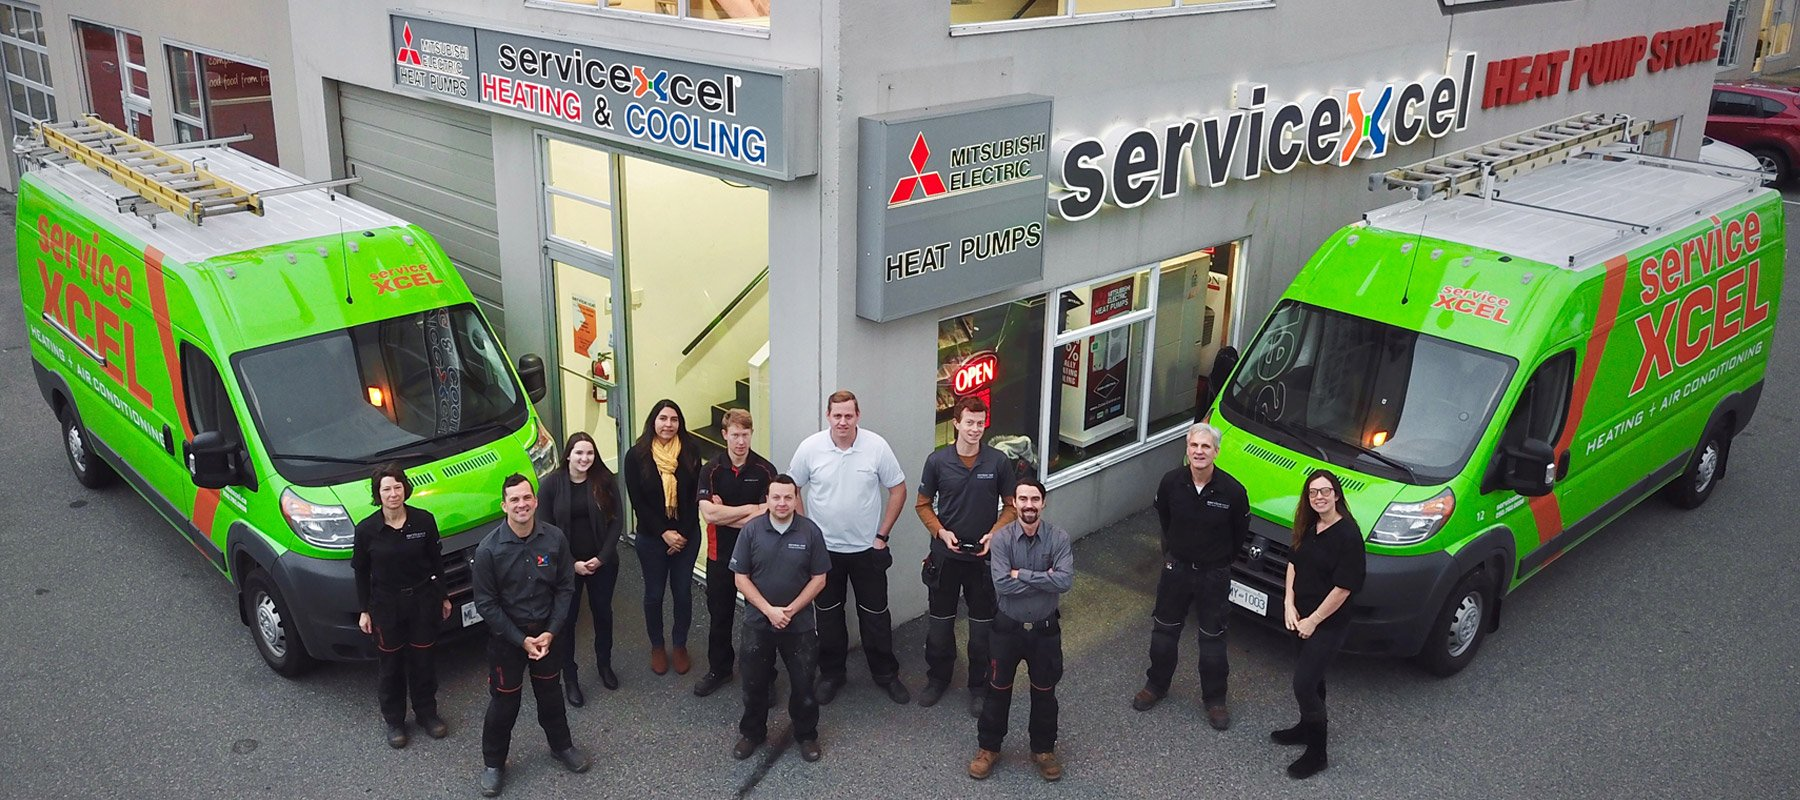 ServiceXcel family: Heating and air conditioning